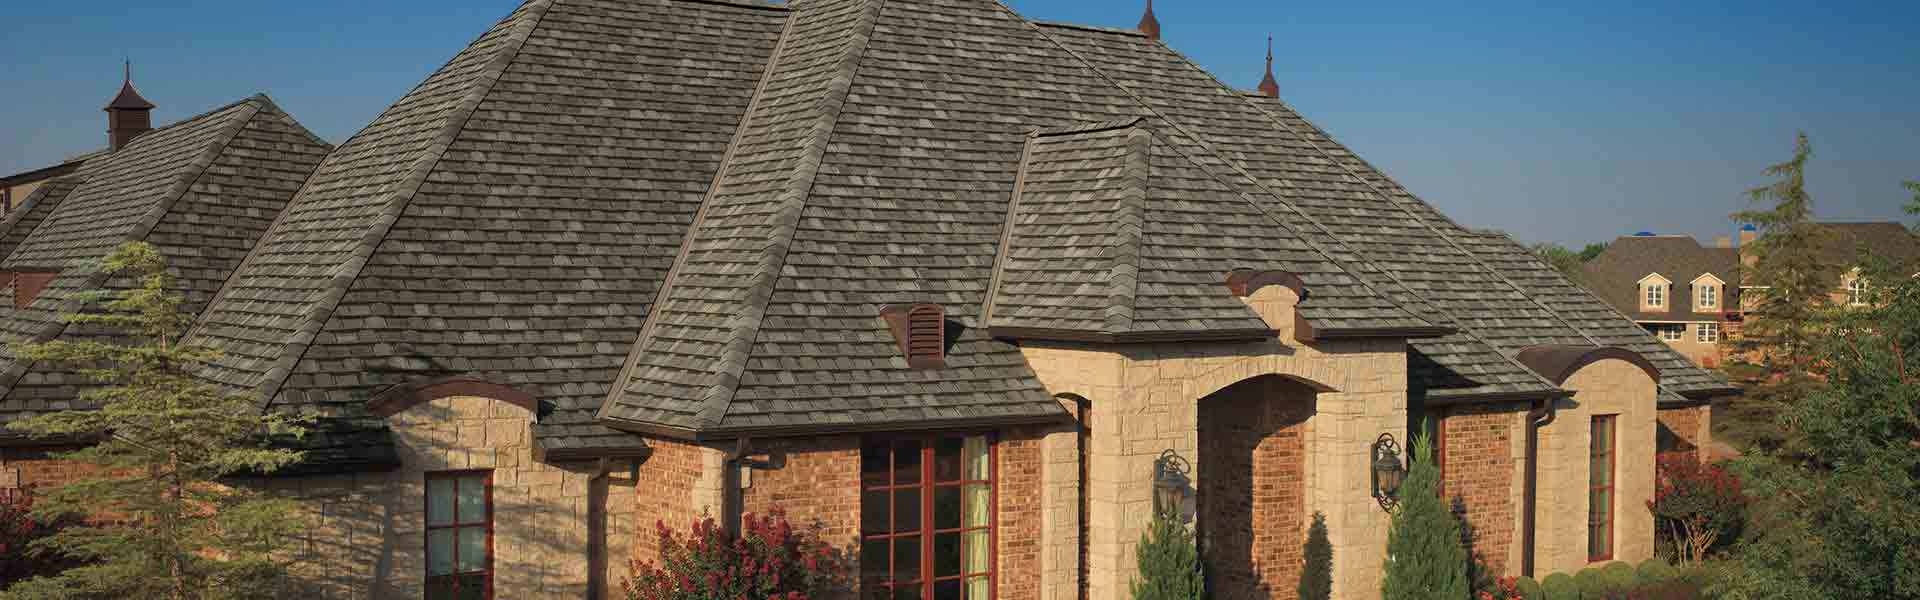 Certified Roof Replacement